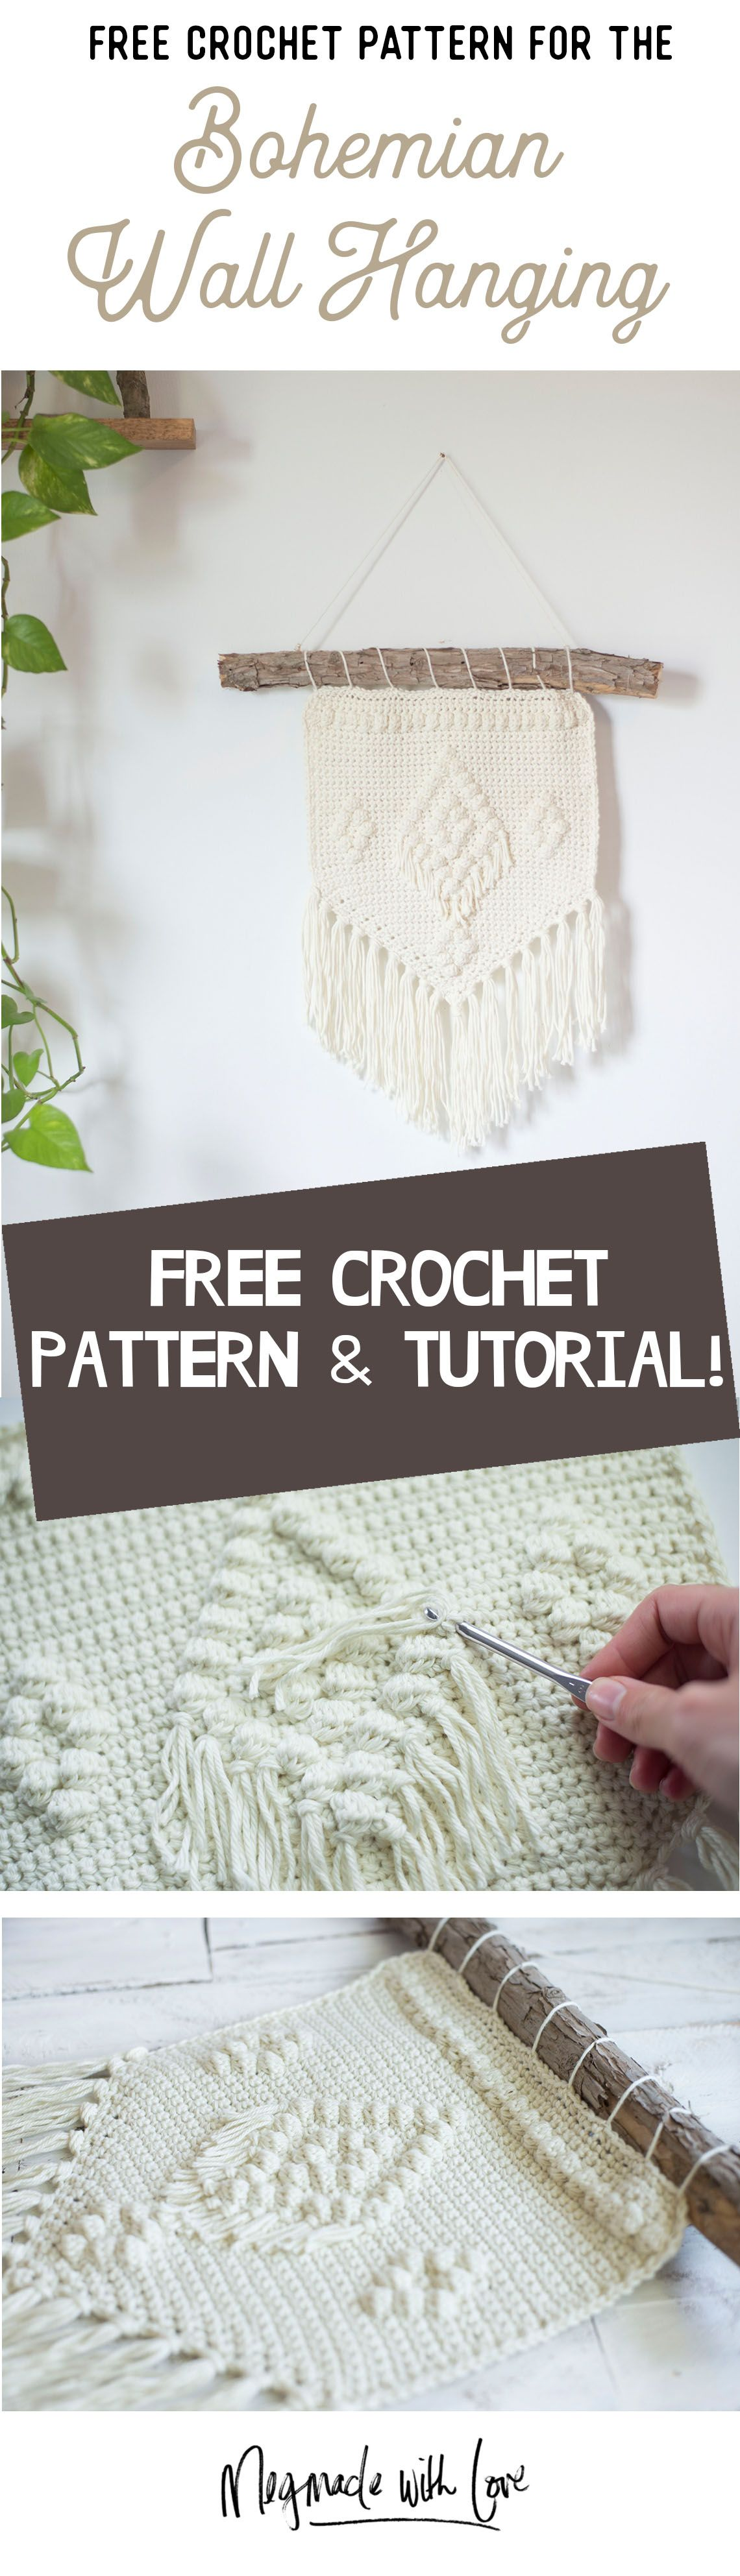 Free Crochet Pattern - The Bohemian Wall Hanging | Pinterest | Tapices